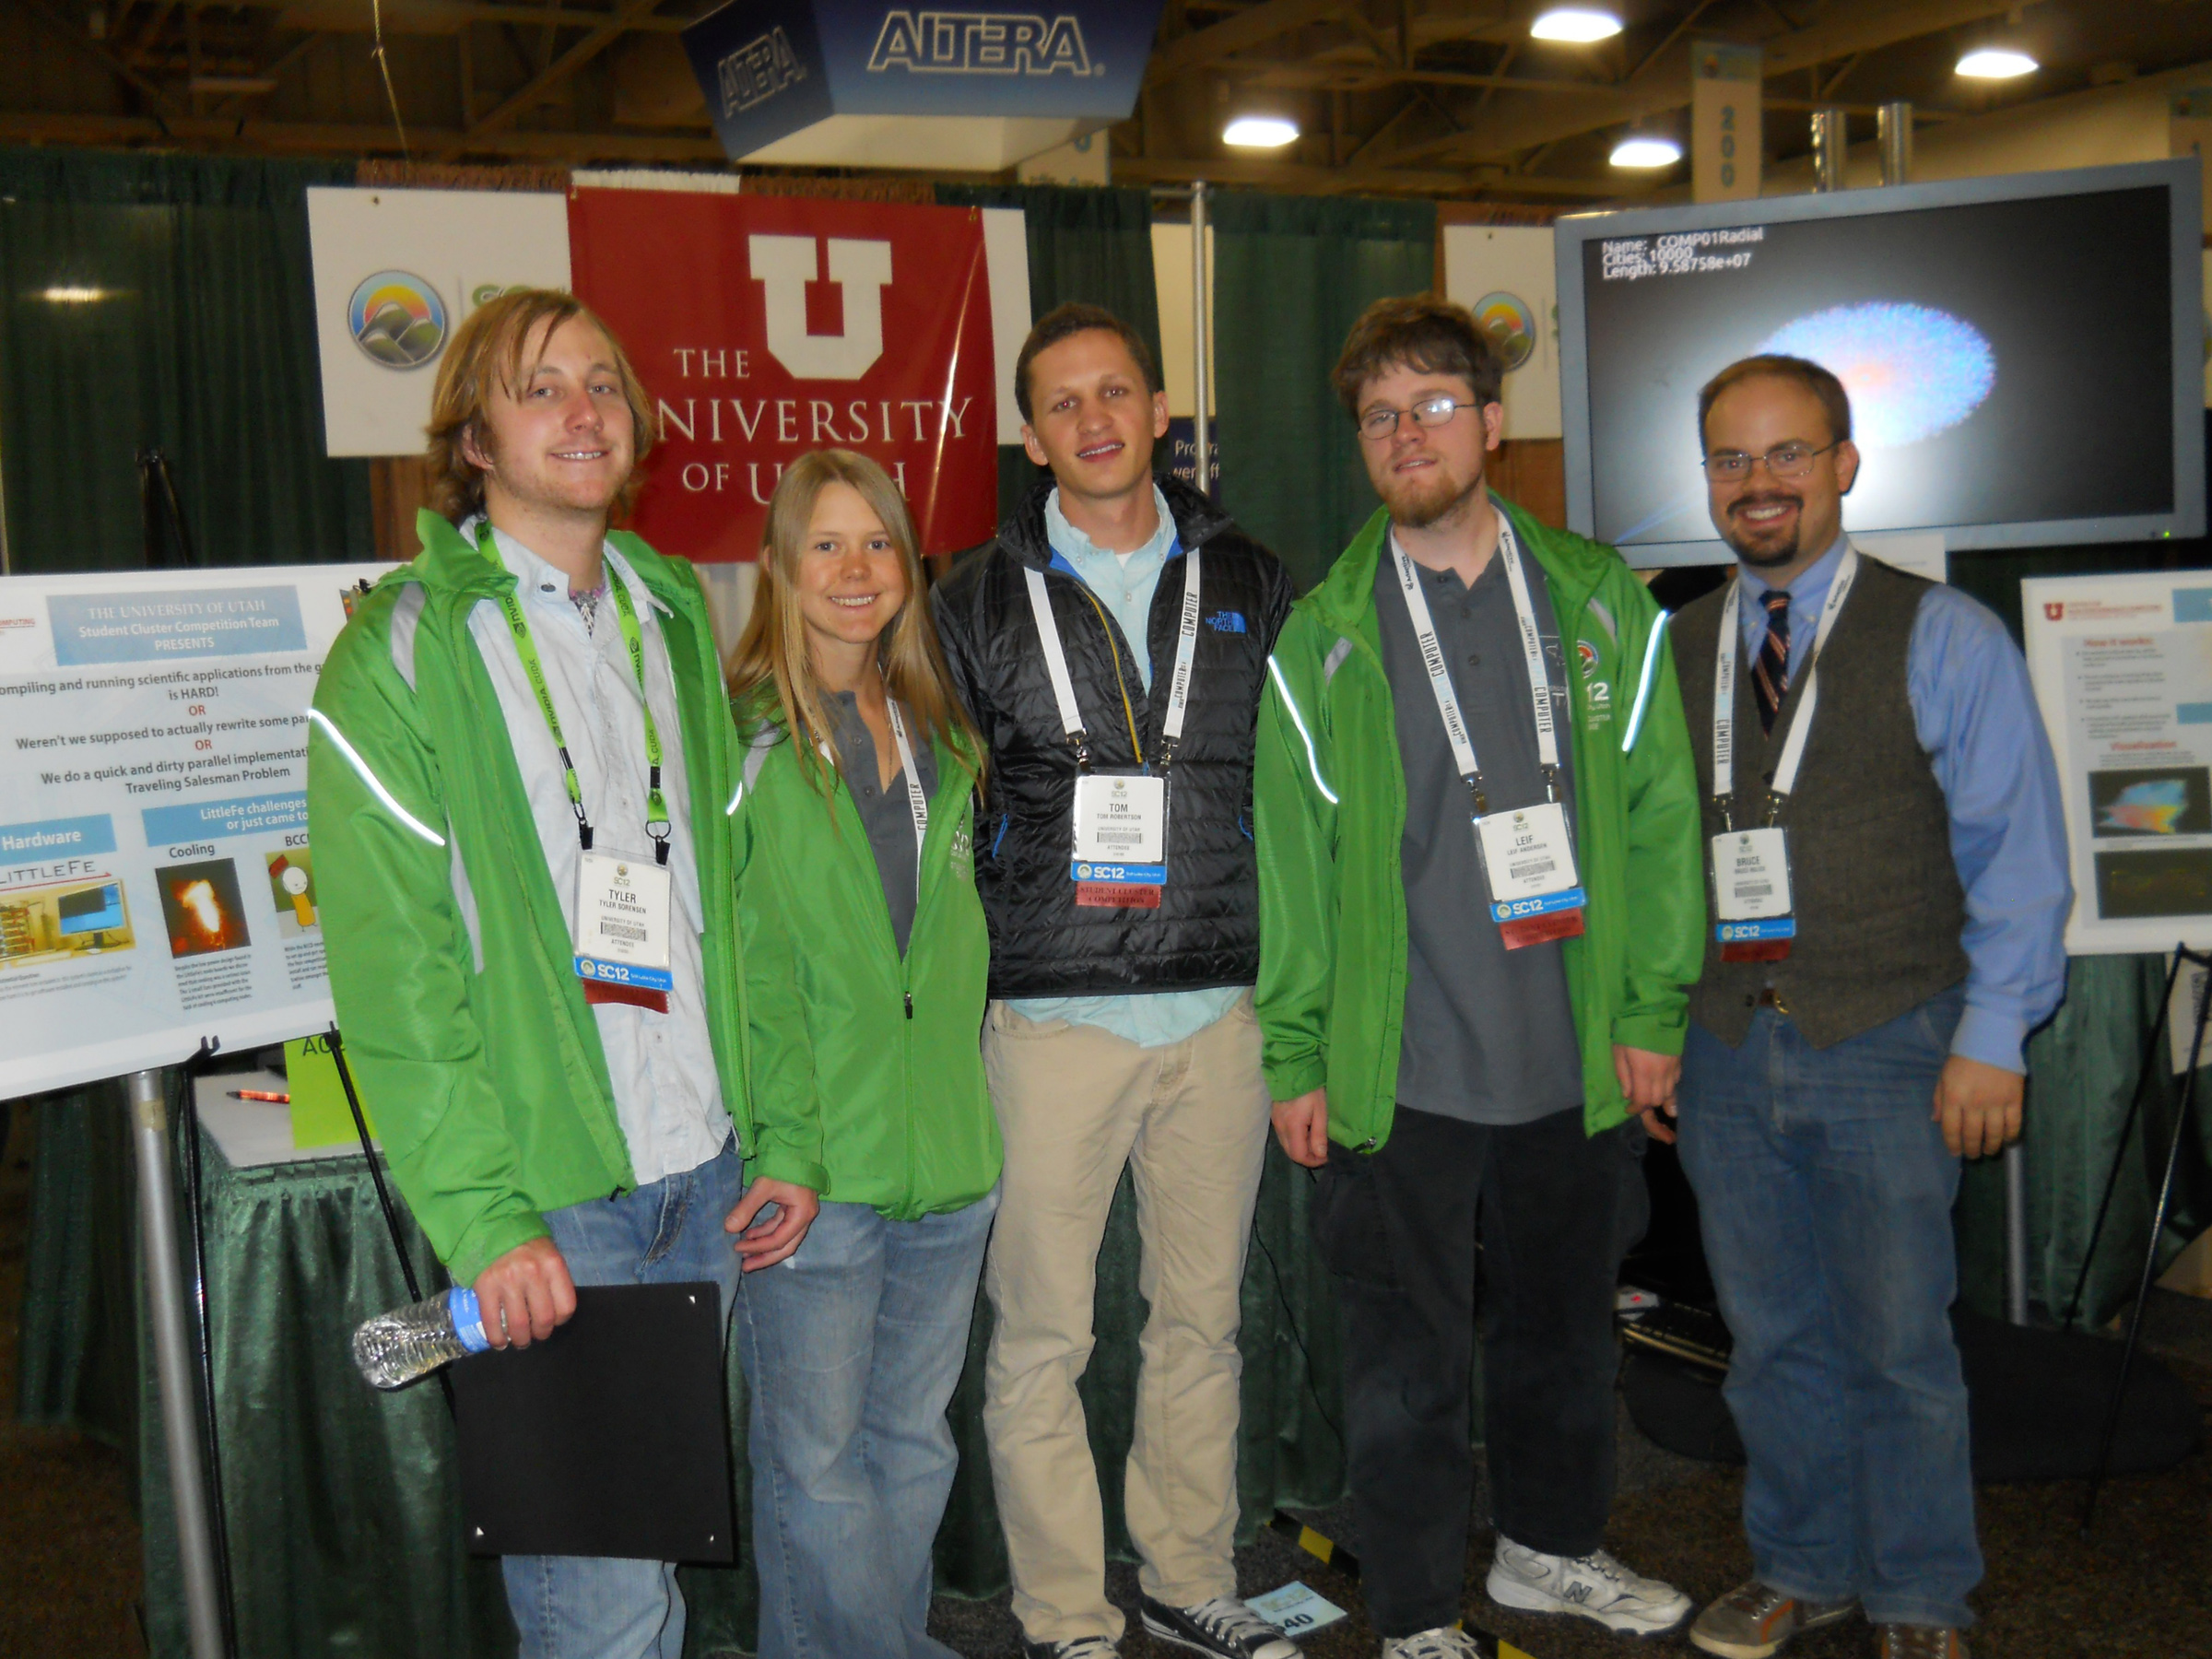 Six University of Utah computer science students won a contest Thursday in which they built a small supercomputer during the SC12 international national supercomputing conference, held at the Salt Palace Convention Center in Salt Lake City. Shown here, from left to right, are five of the winning students: Tyler Sorenson, Kathryn Rodgers, Tom Robertson, Leif Andersen and Bruce Bolick. The sixth winner, Ian King, is not shown.